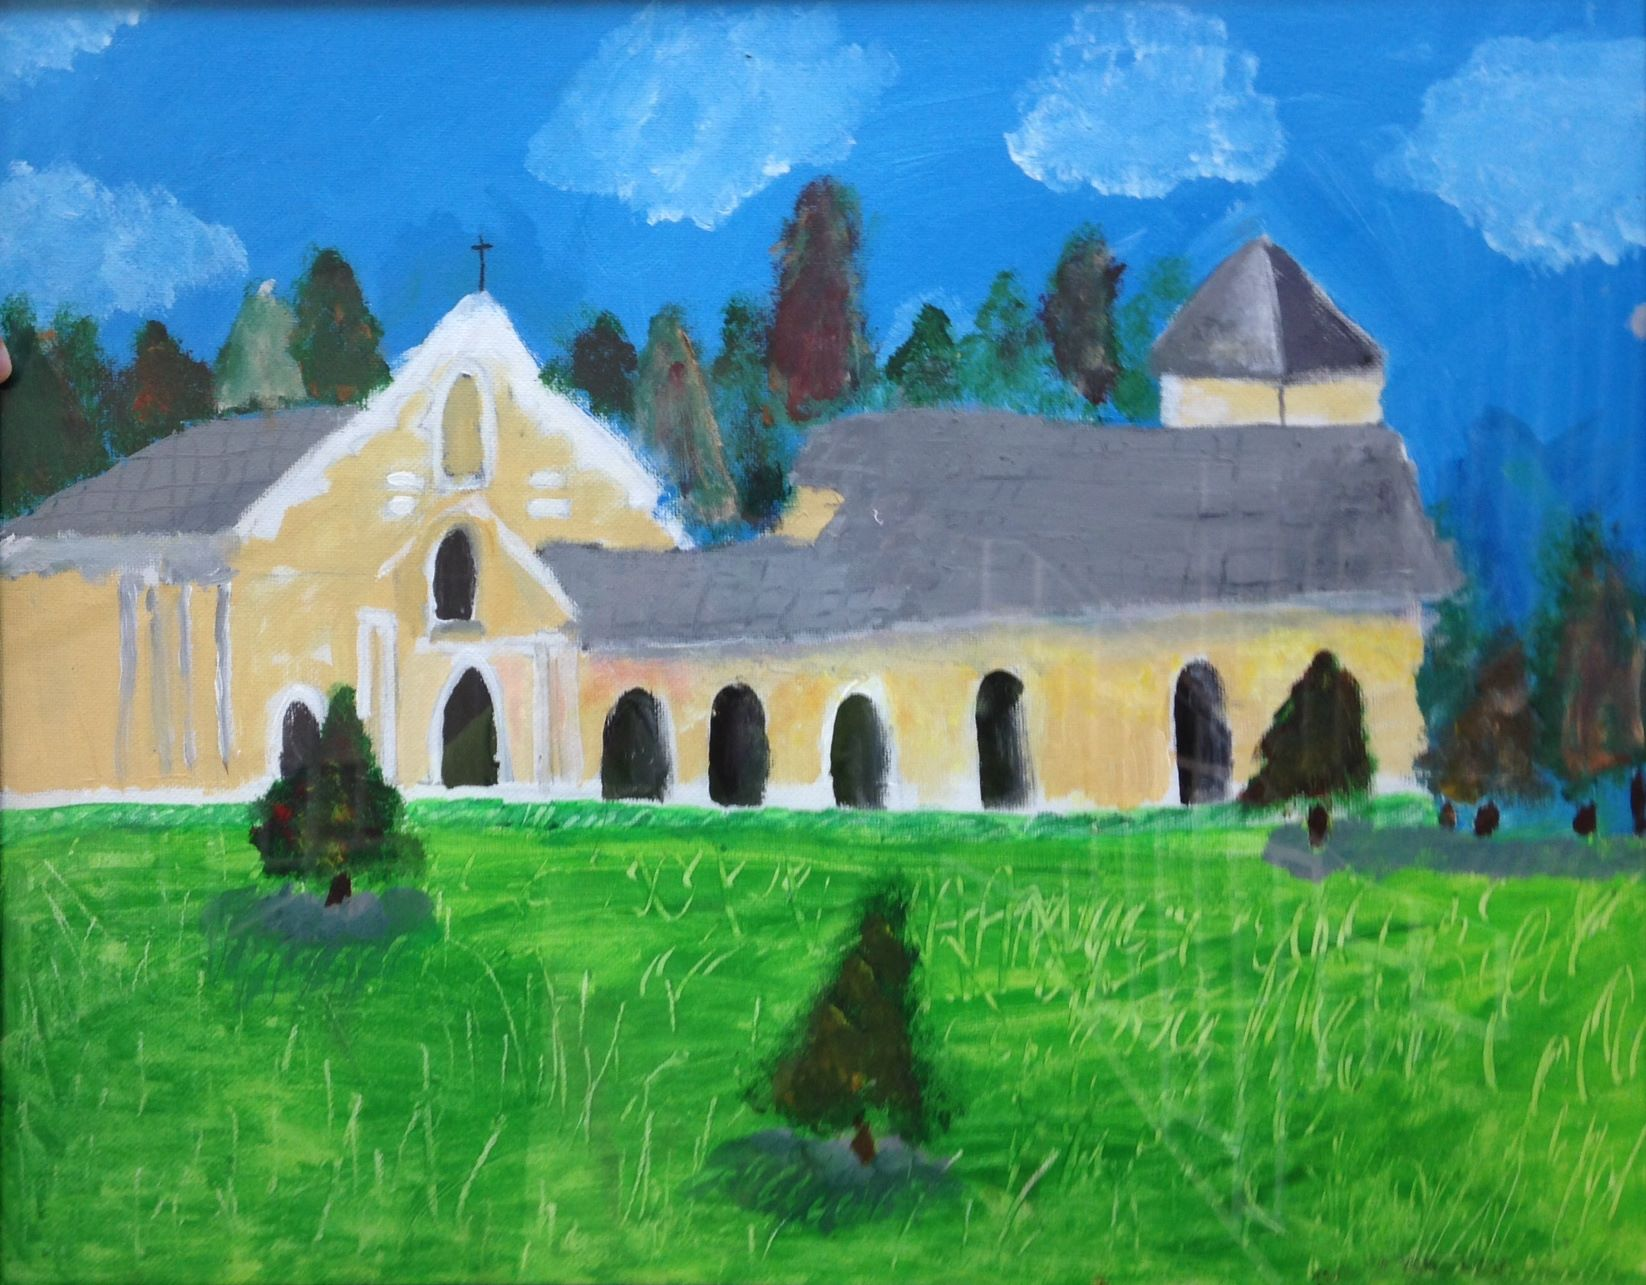 Painting by a young parishioner of St. Aidan's